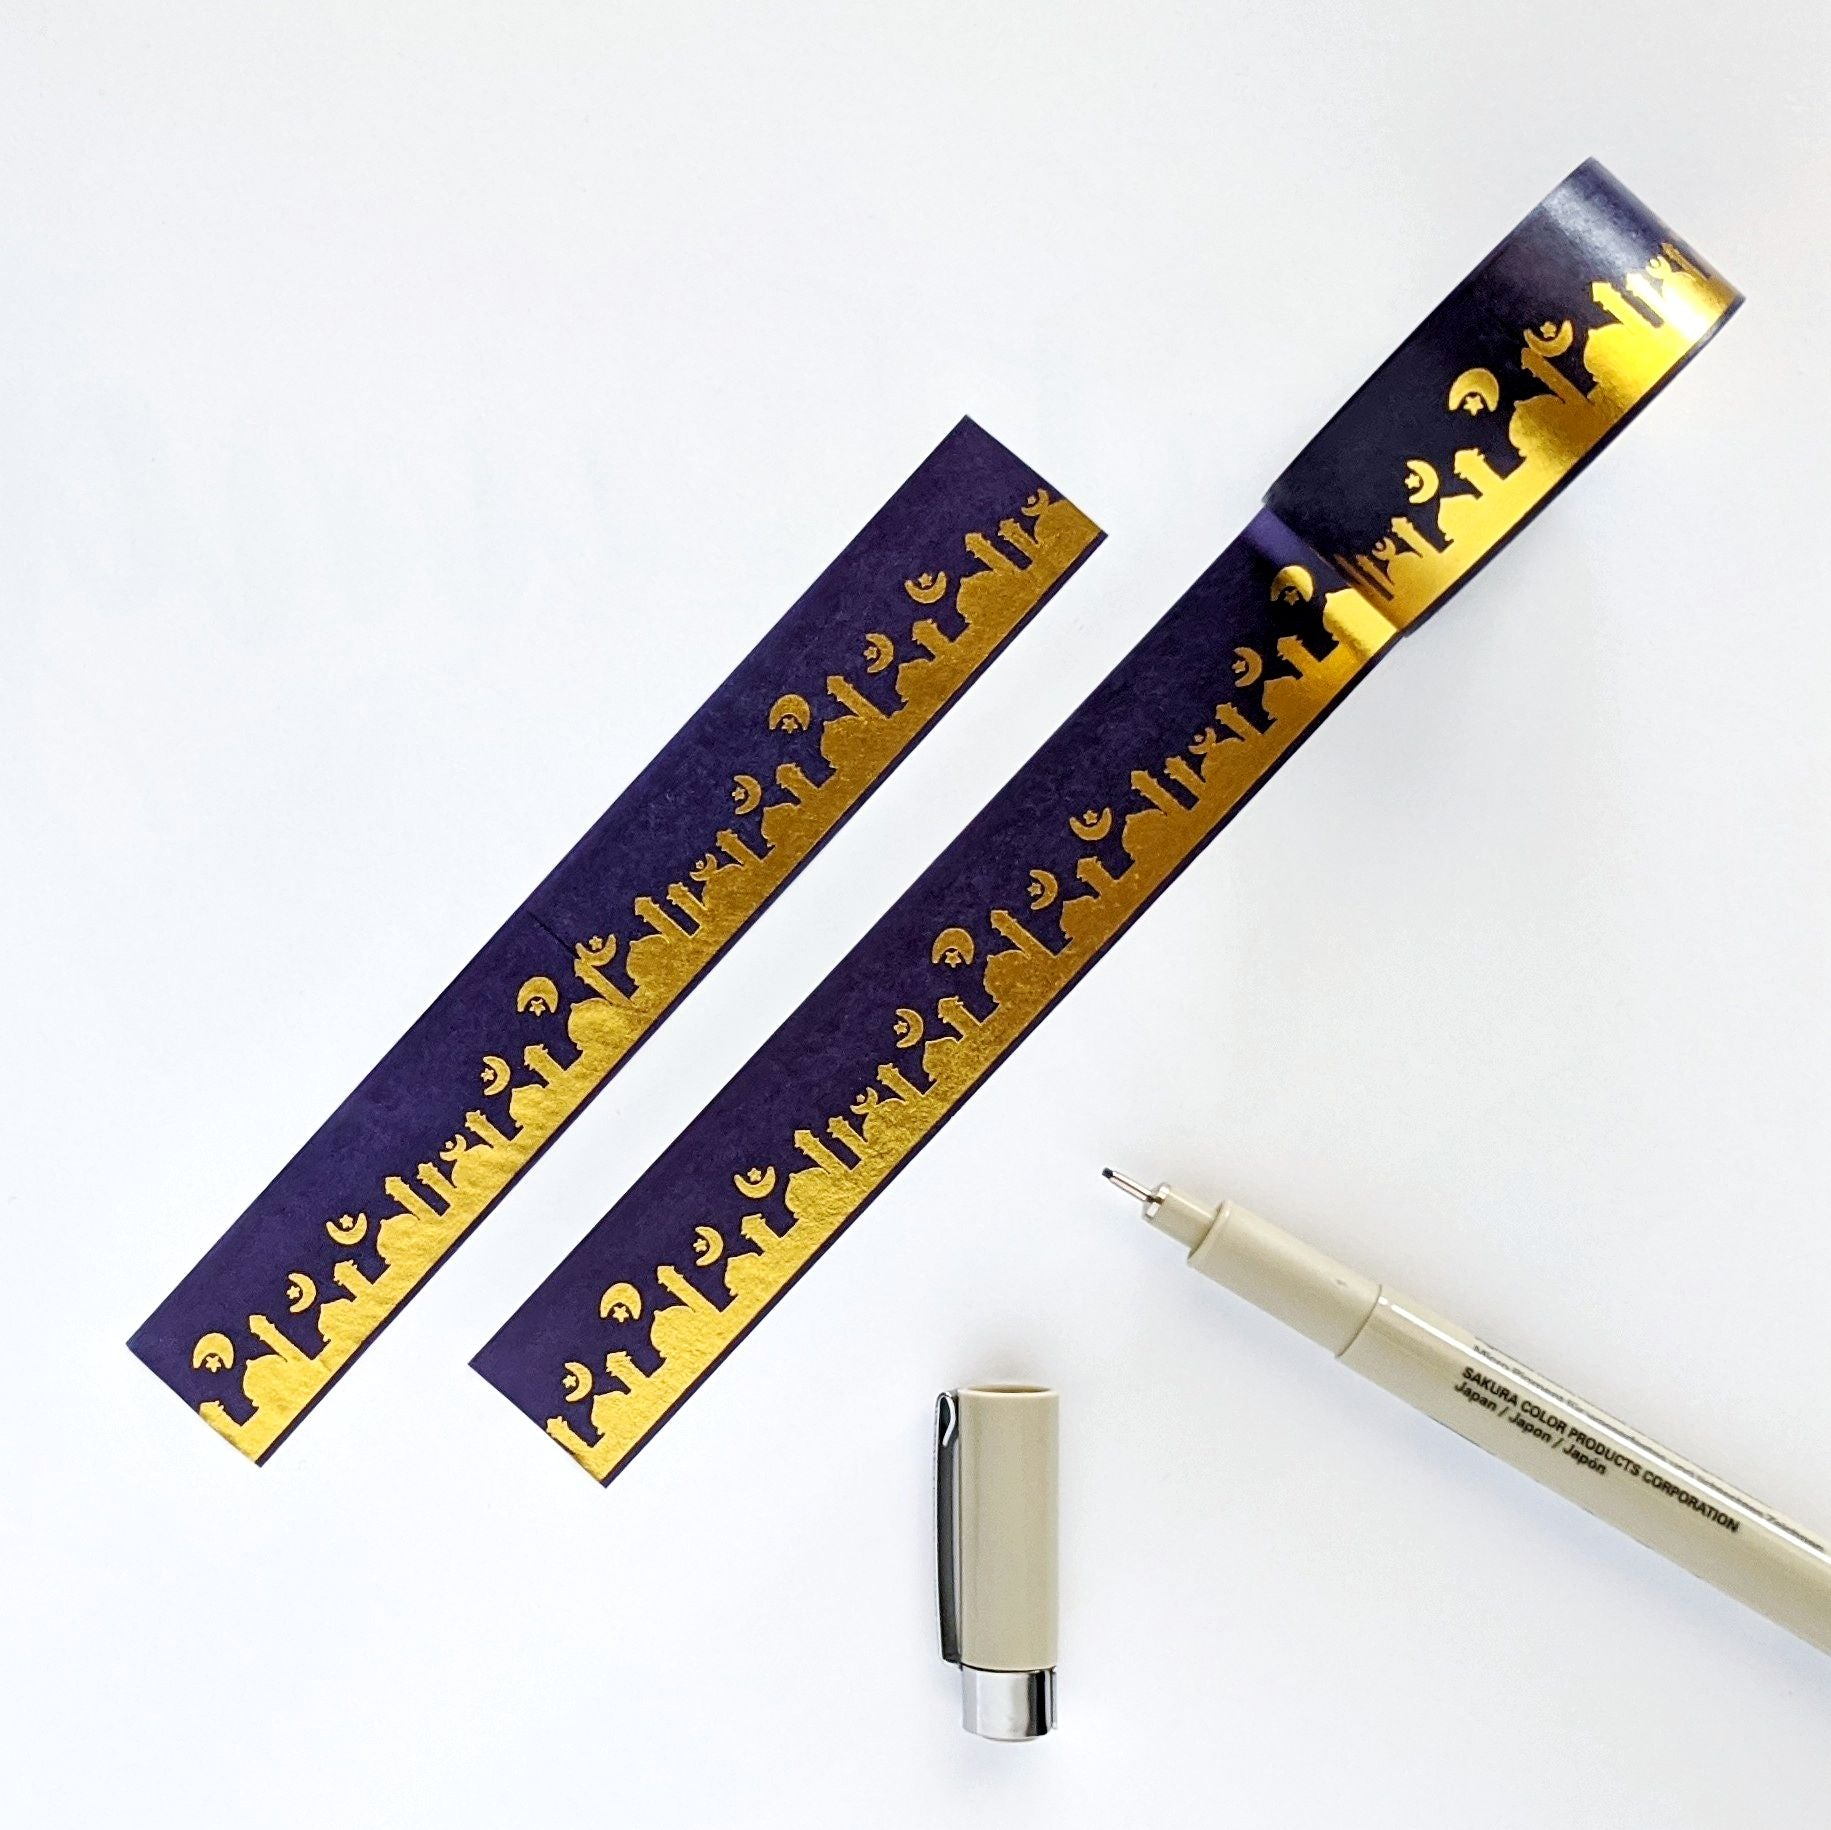 Mosque & Crescent Eid Washi Tape